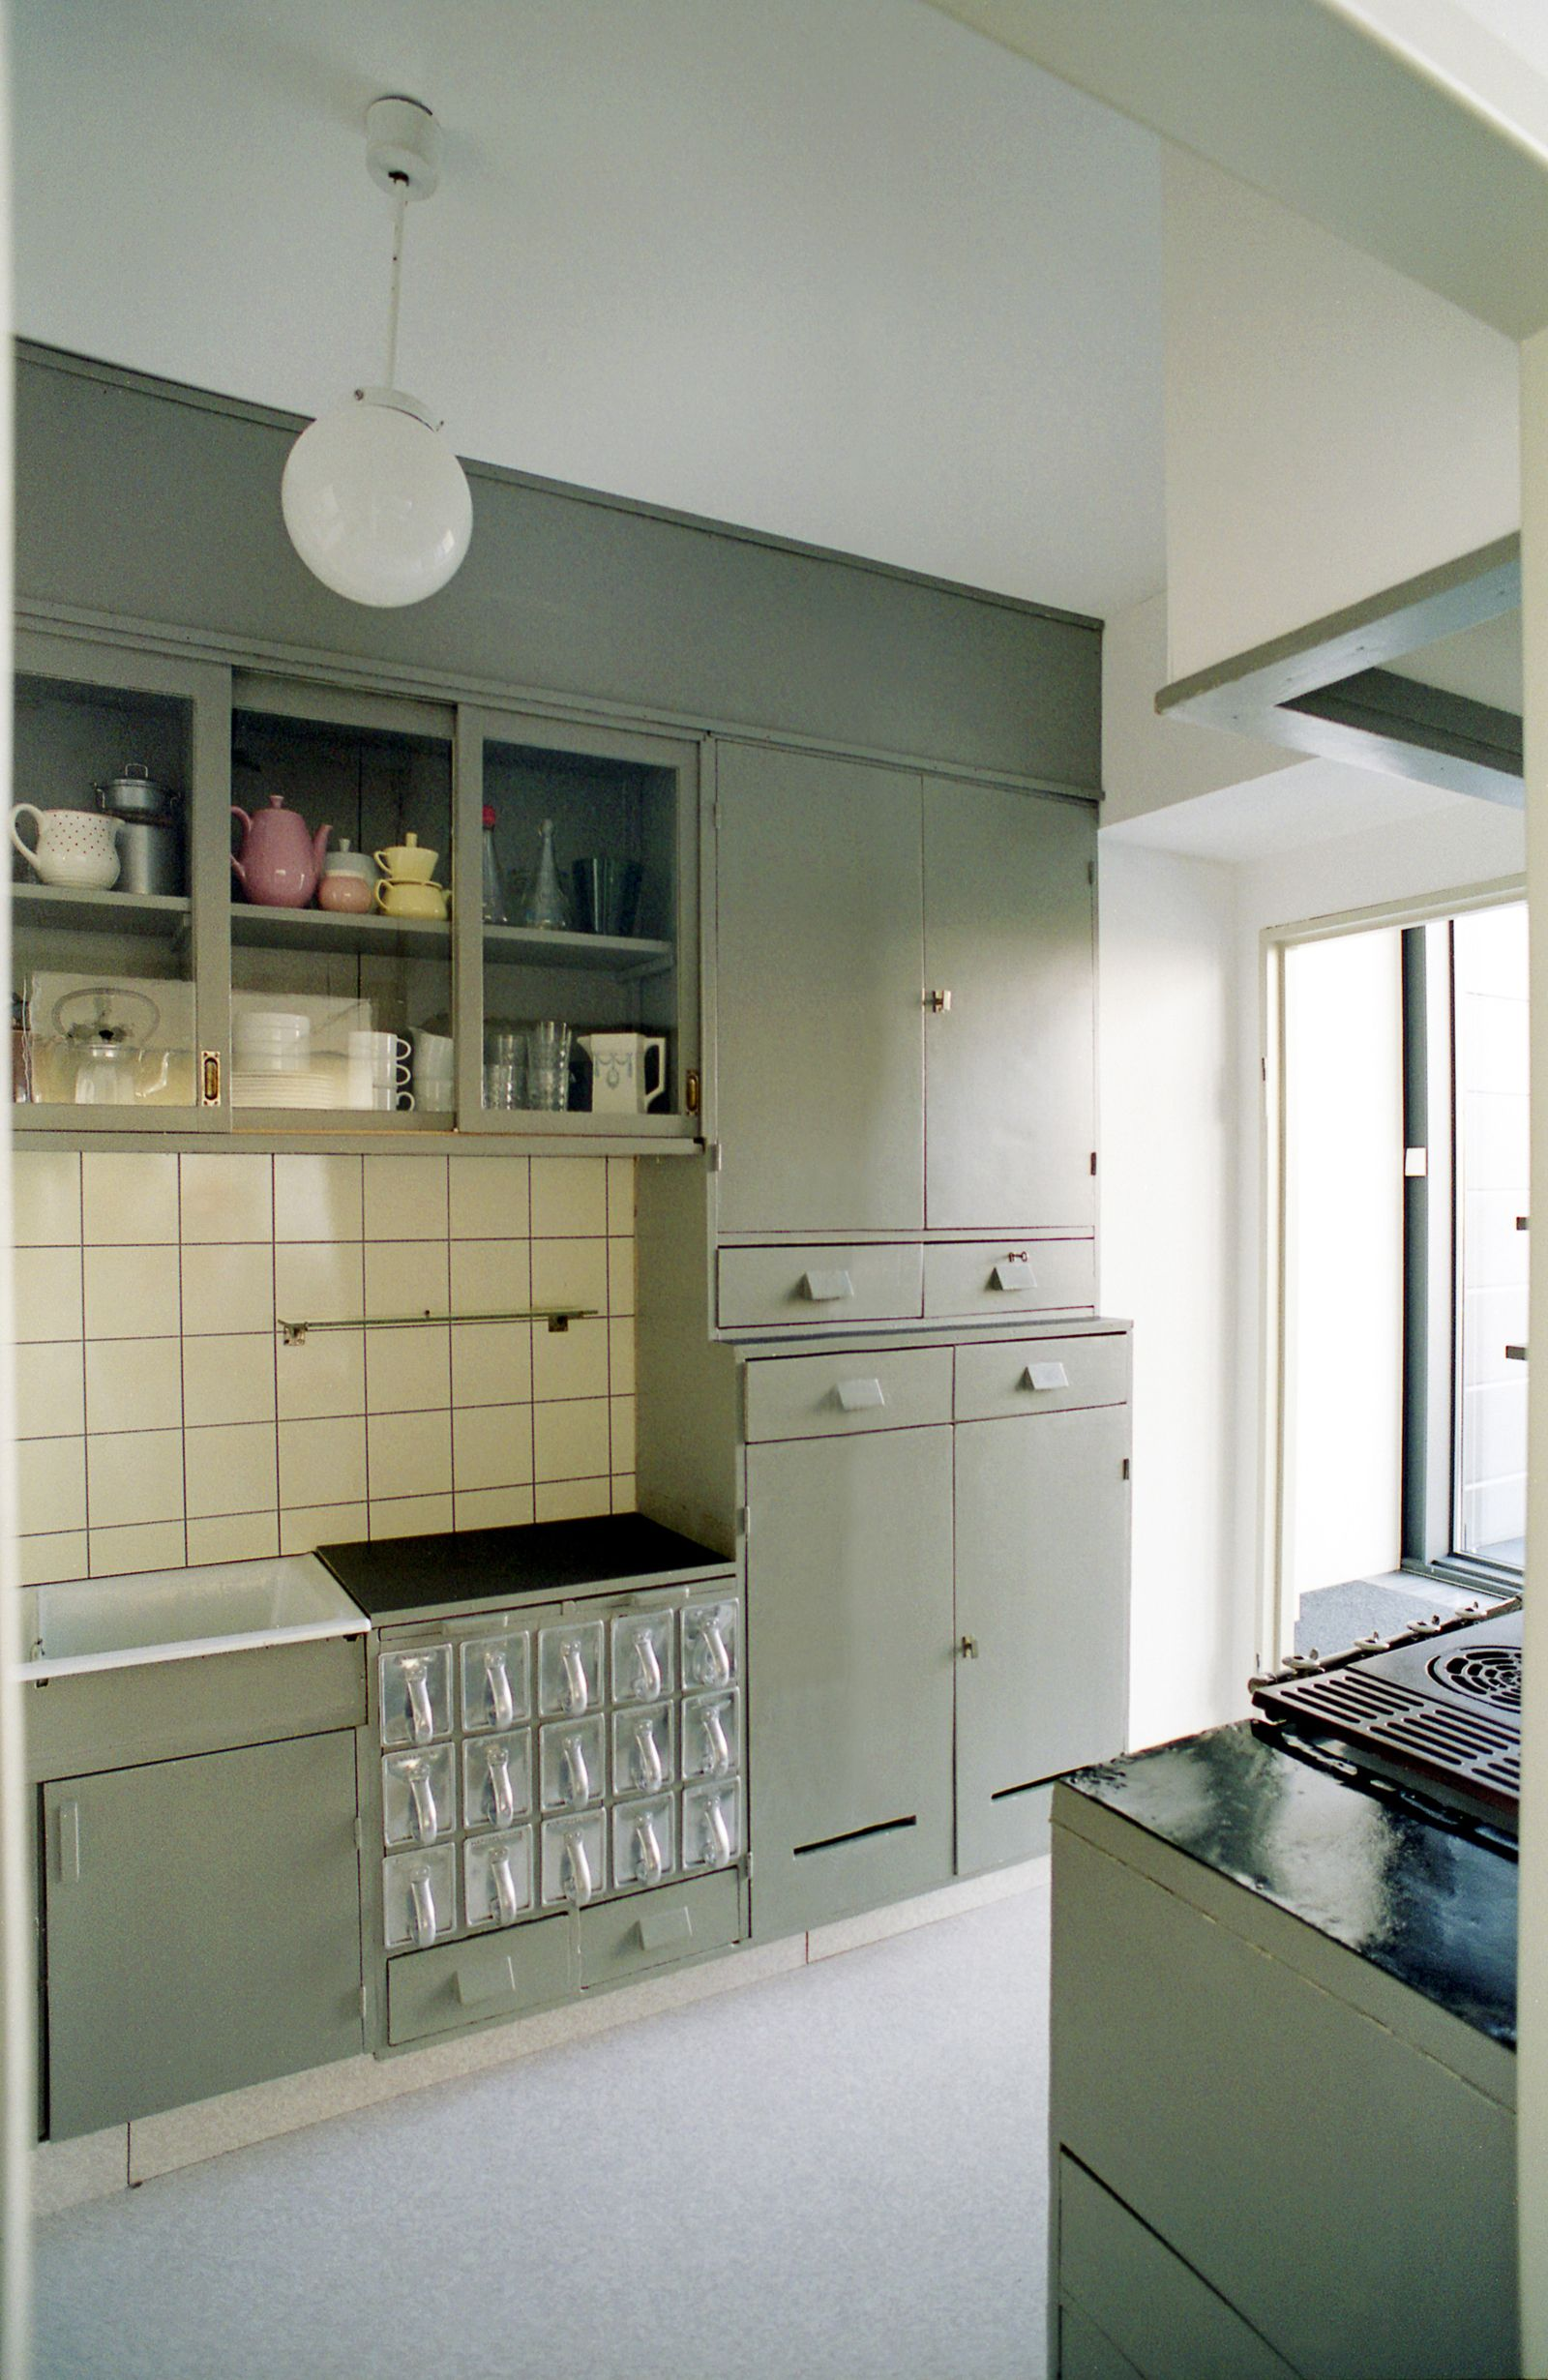 Search 1950s From Counter Space At The Moma Kitchen Interior Modern Kitchen Bauhaus Interior